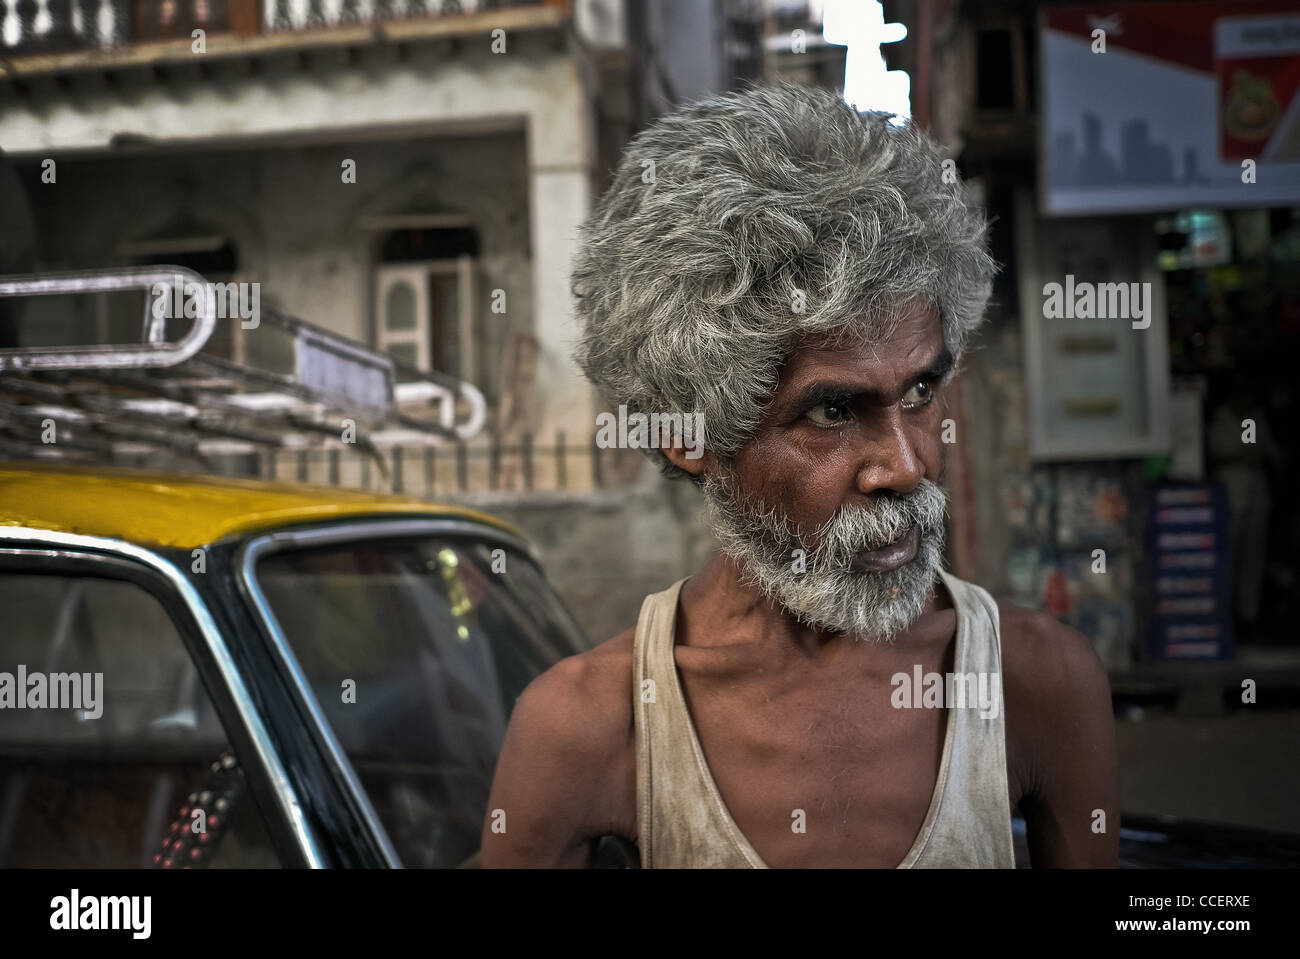 Untouchable and disabled Bombay., The distance. - Stock Image